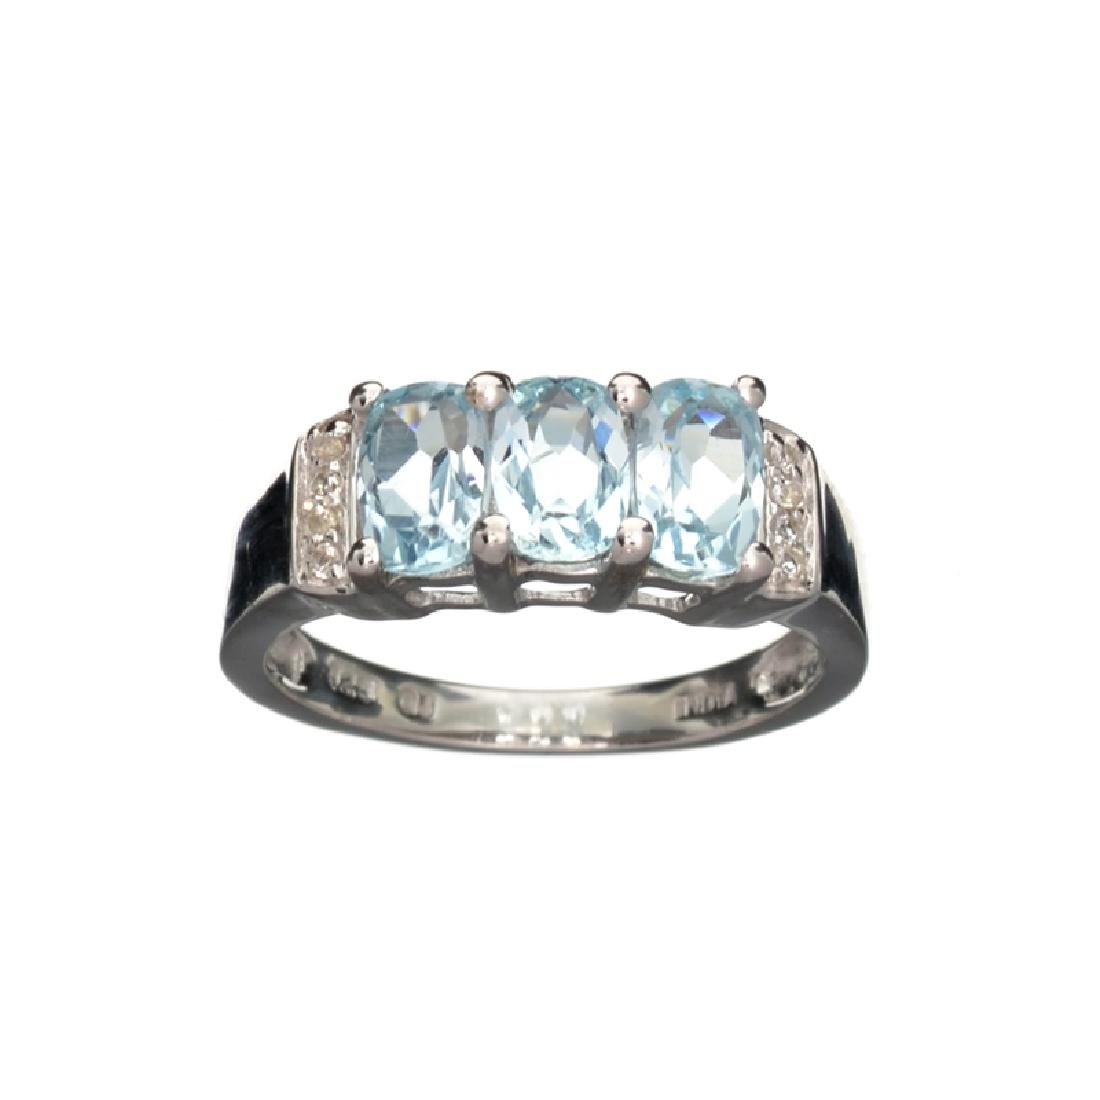 APP: 0.3k Fine Jewelry 1.84CT Blue Topaz And White